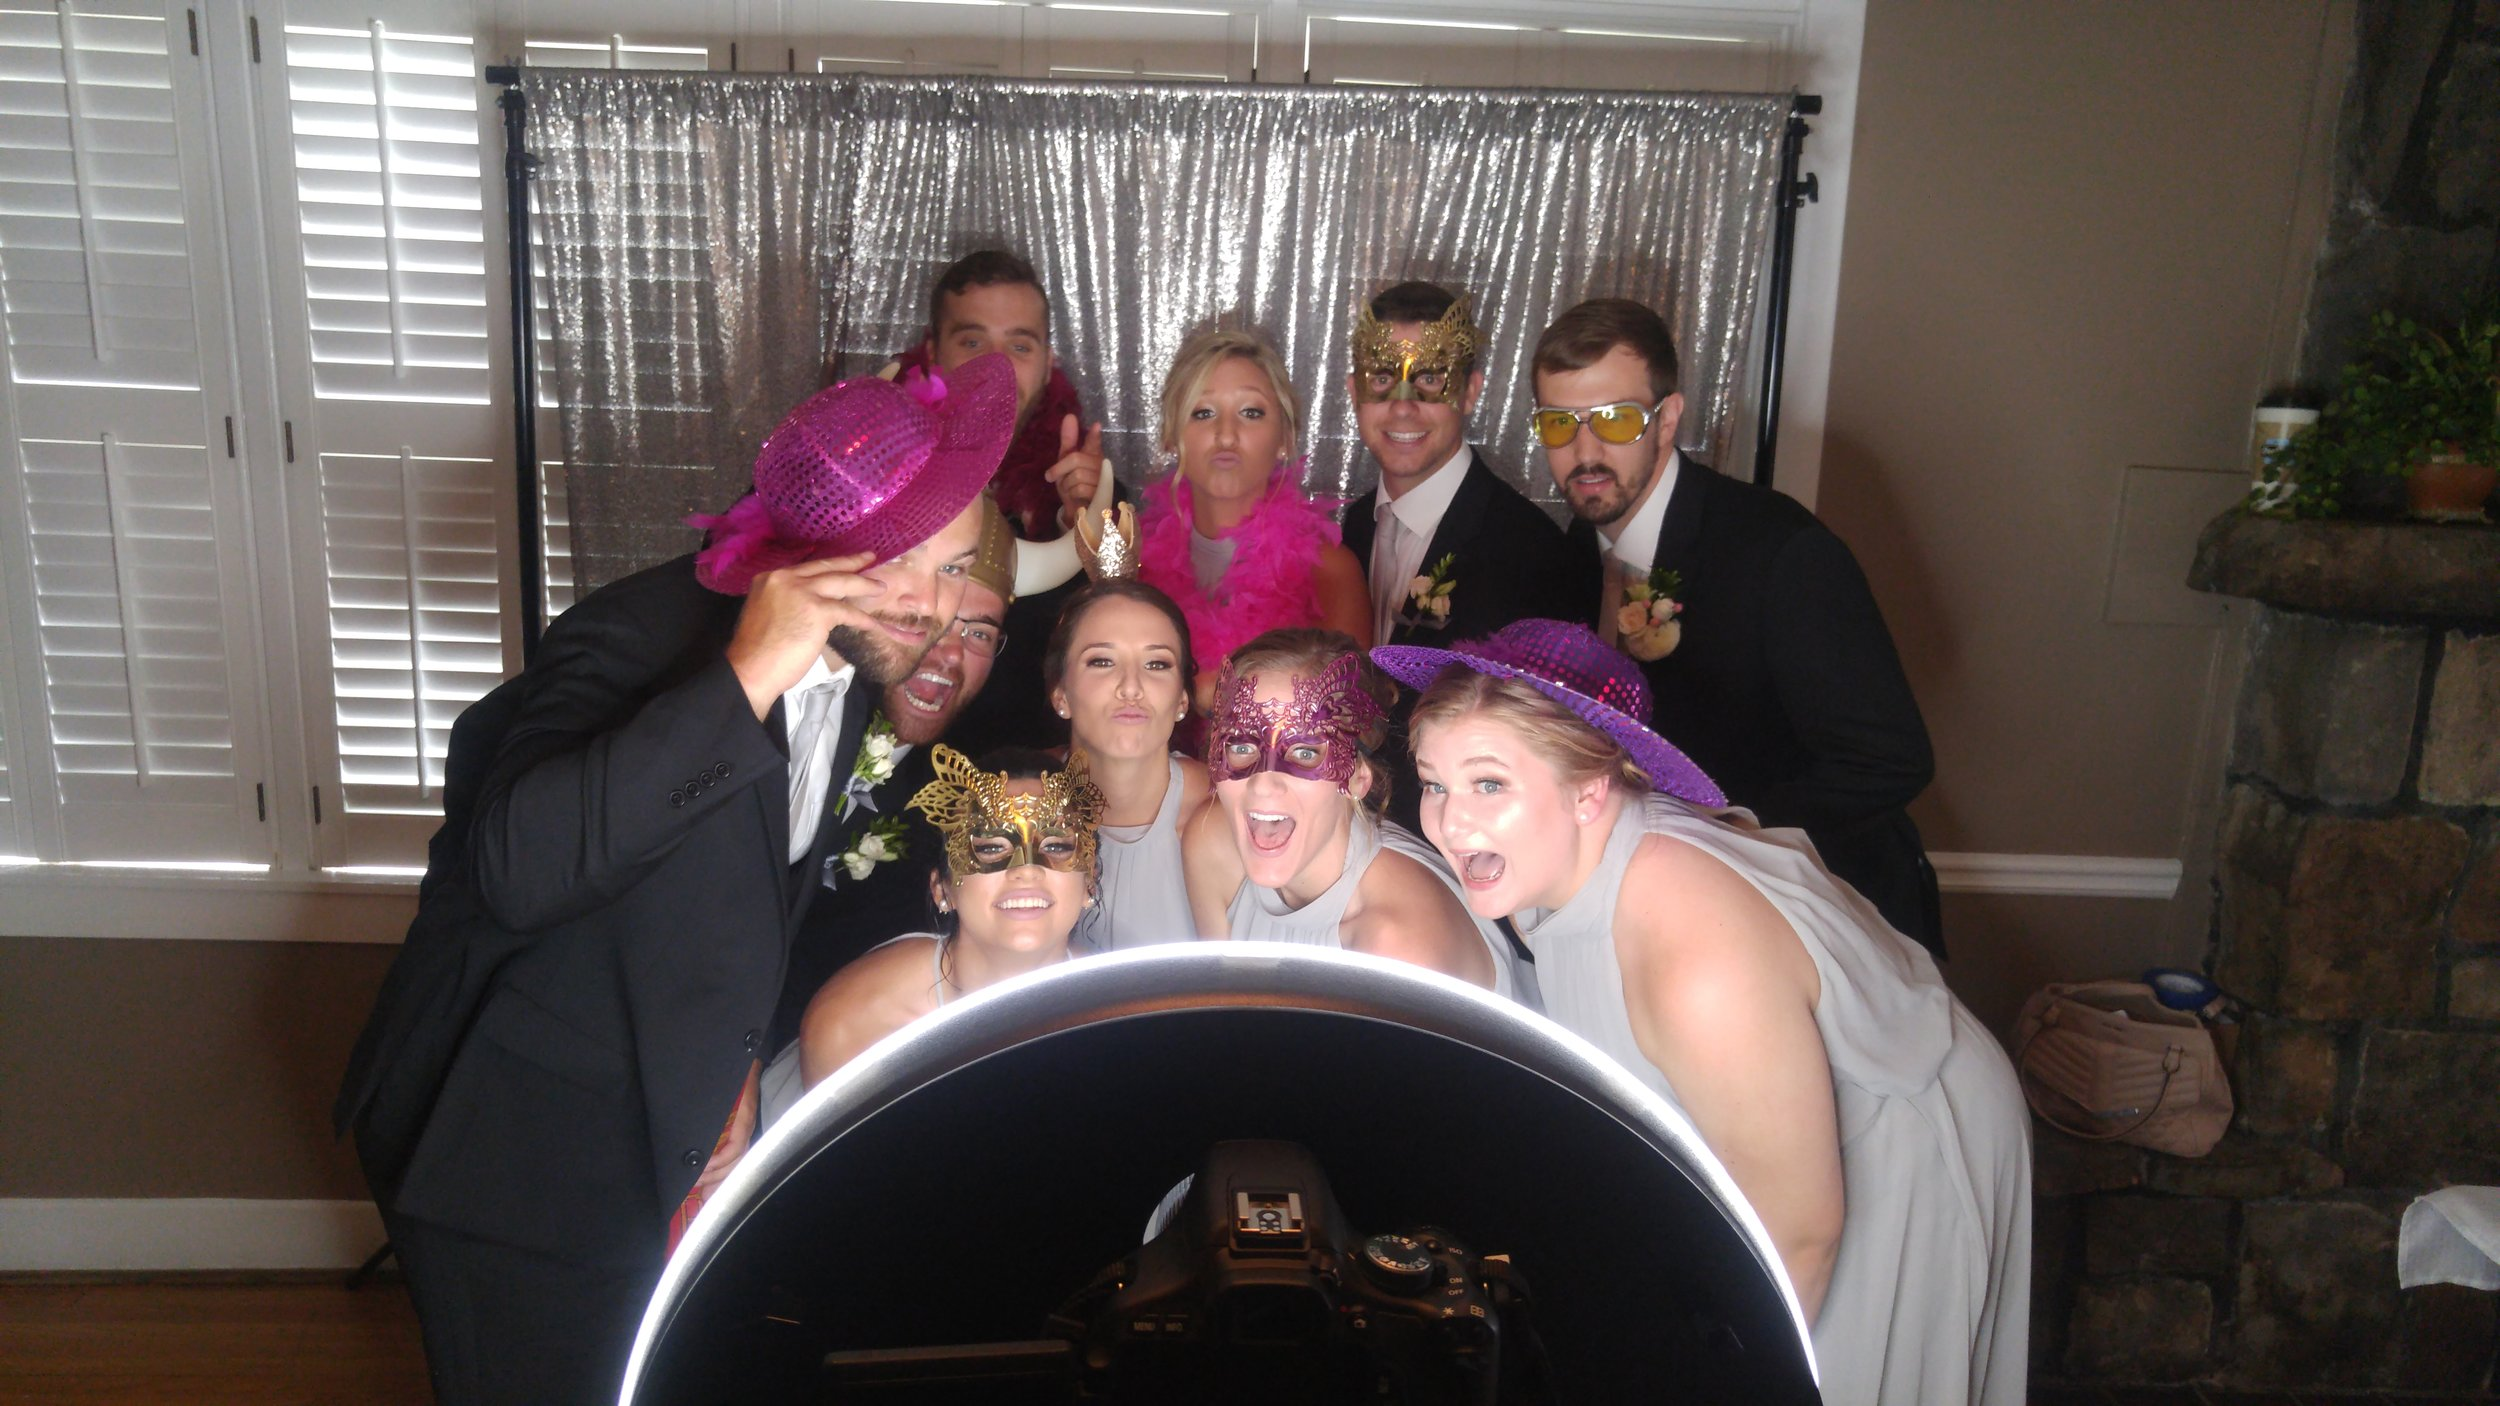 Wedding guests at a photo booth